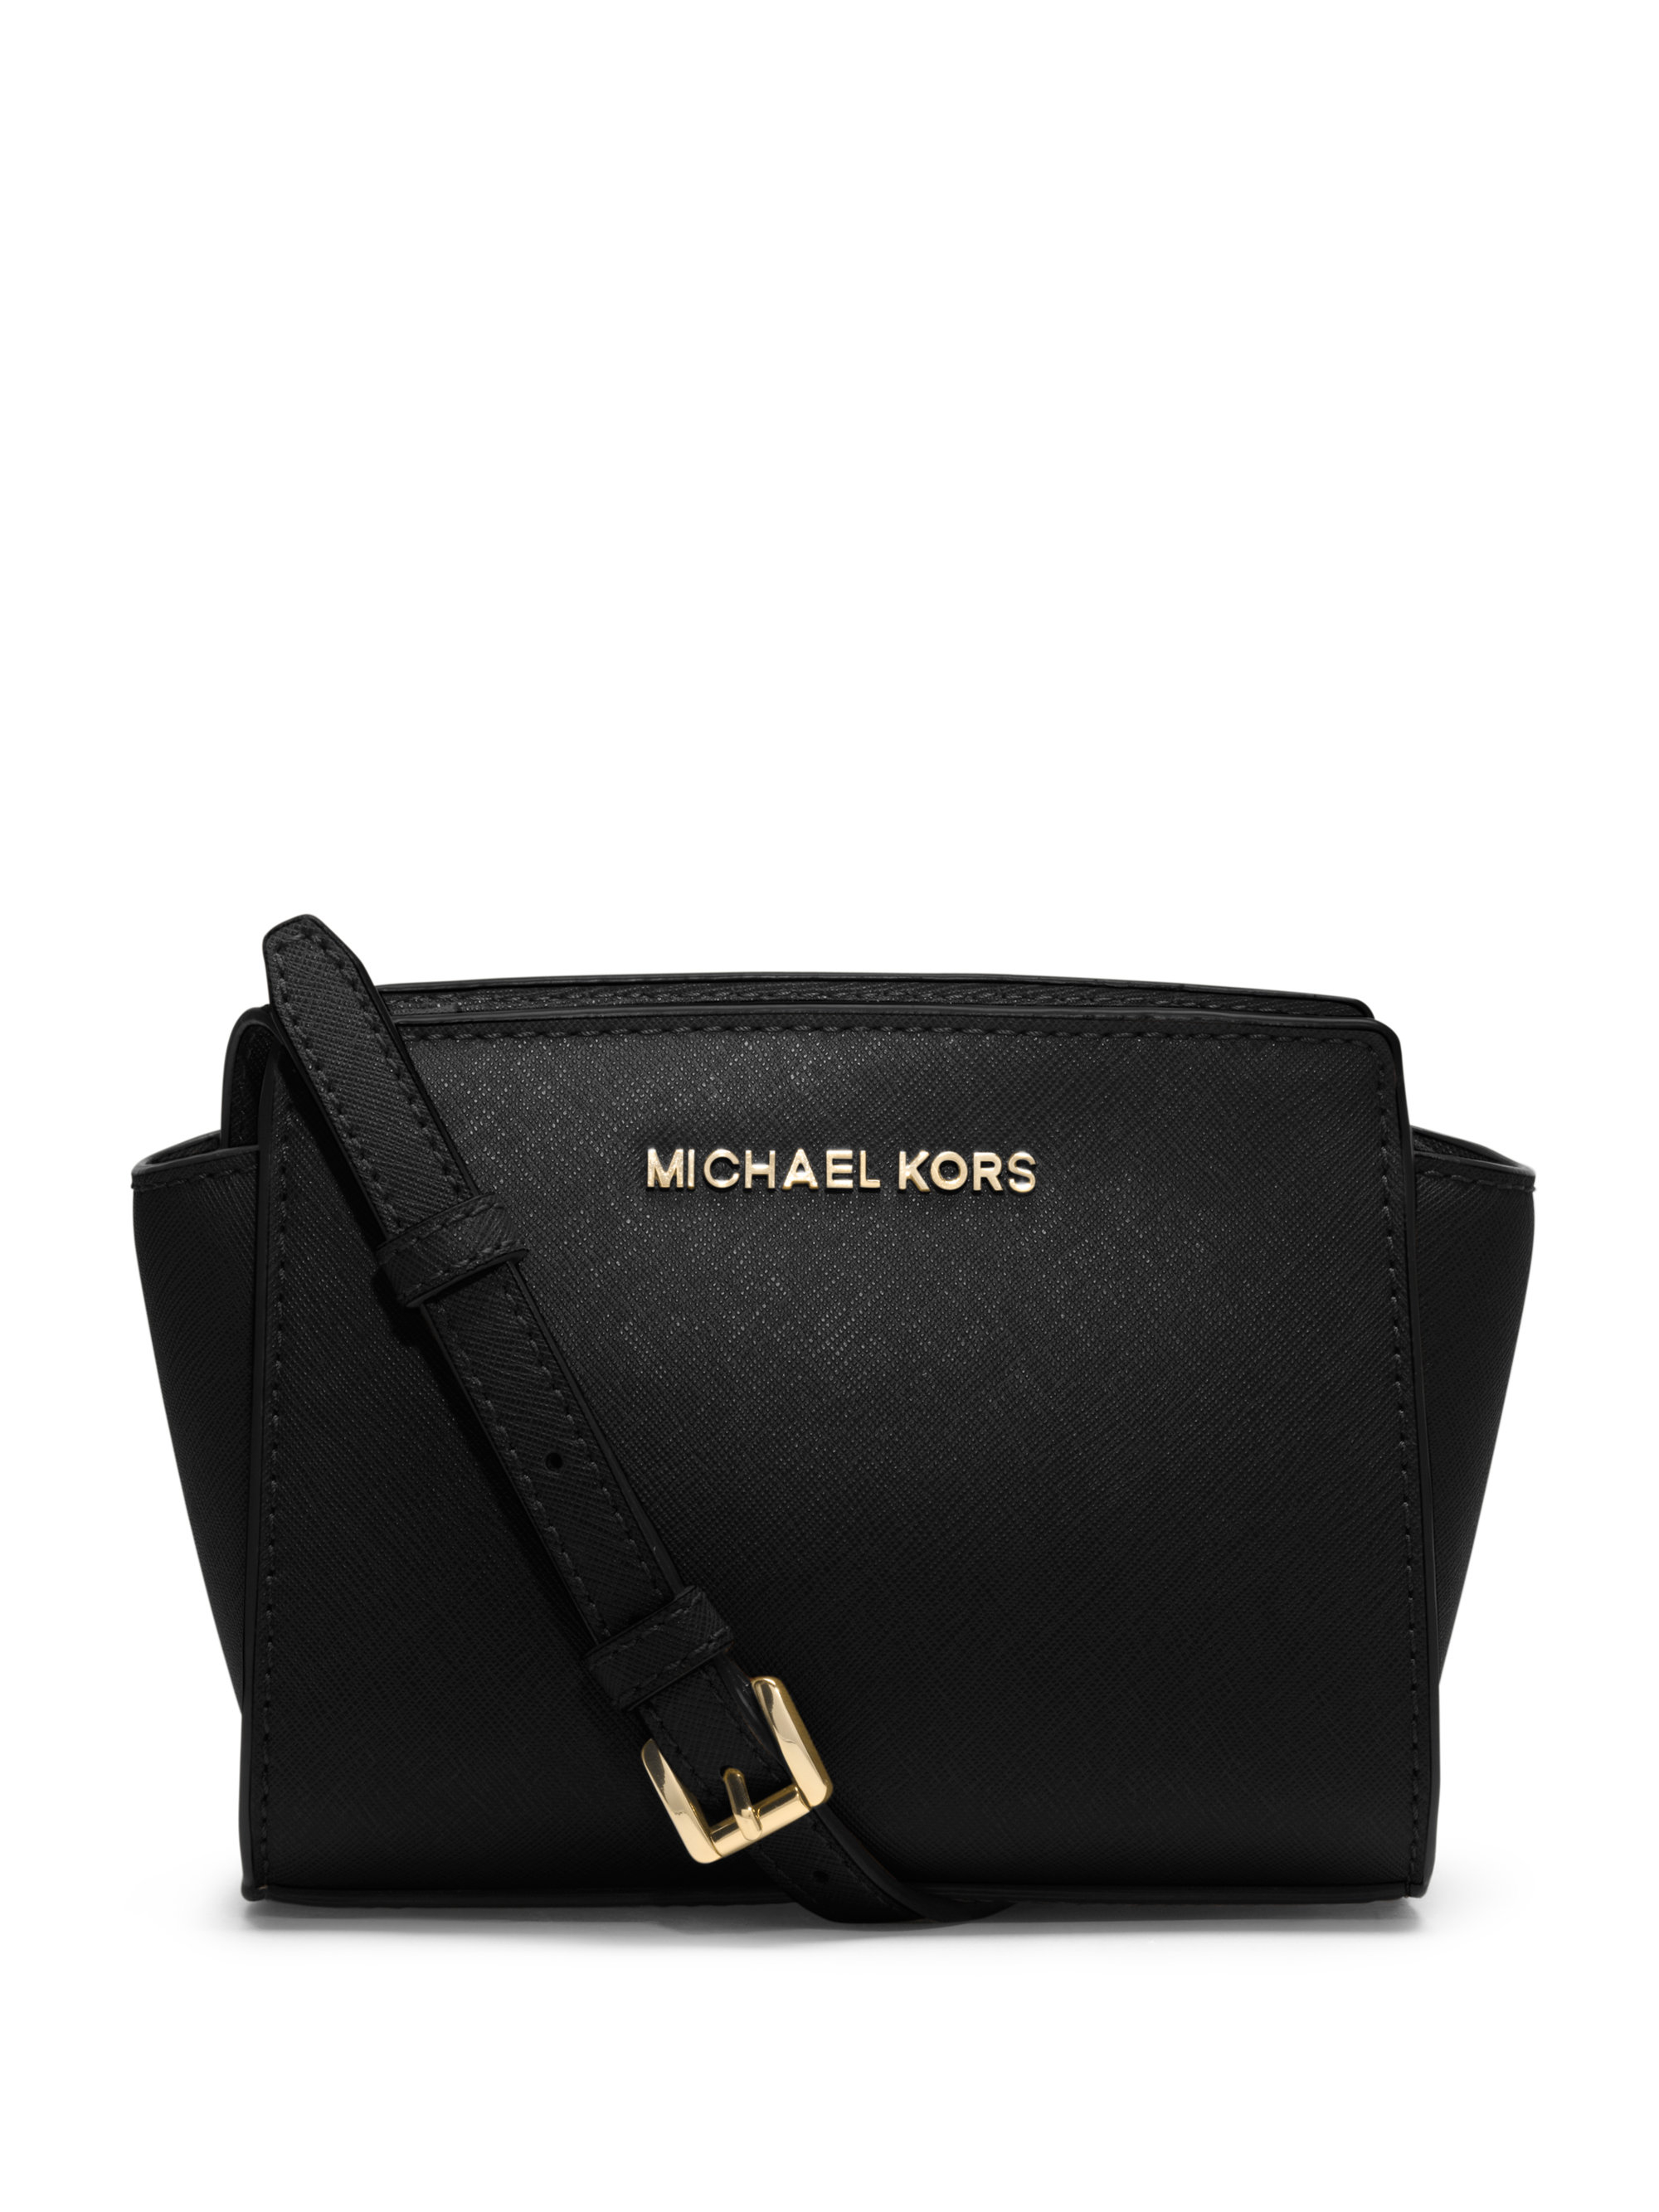 6f57d610efa560 Gallery. Previously sold at: Saks Fifth Avenue · Women's Michael By Michael  Kors Selma